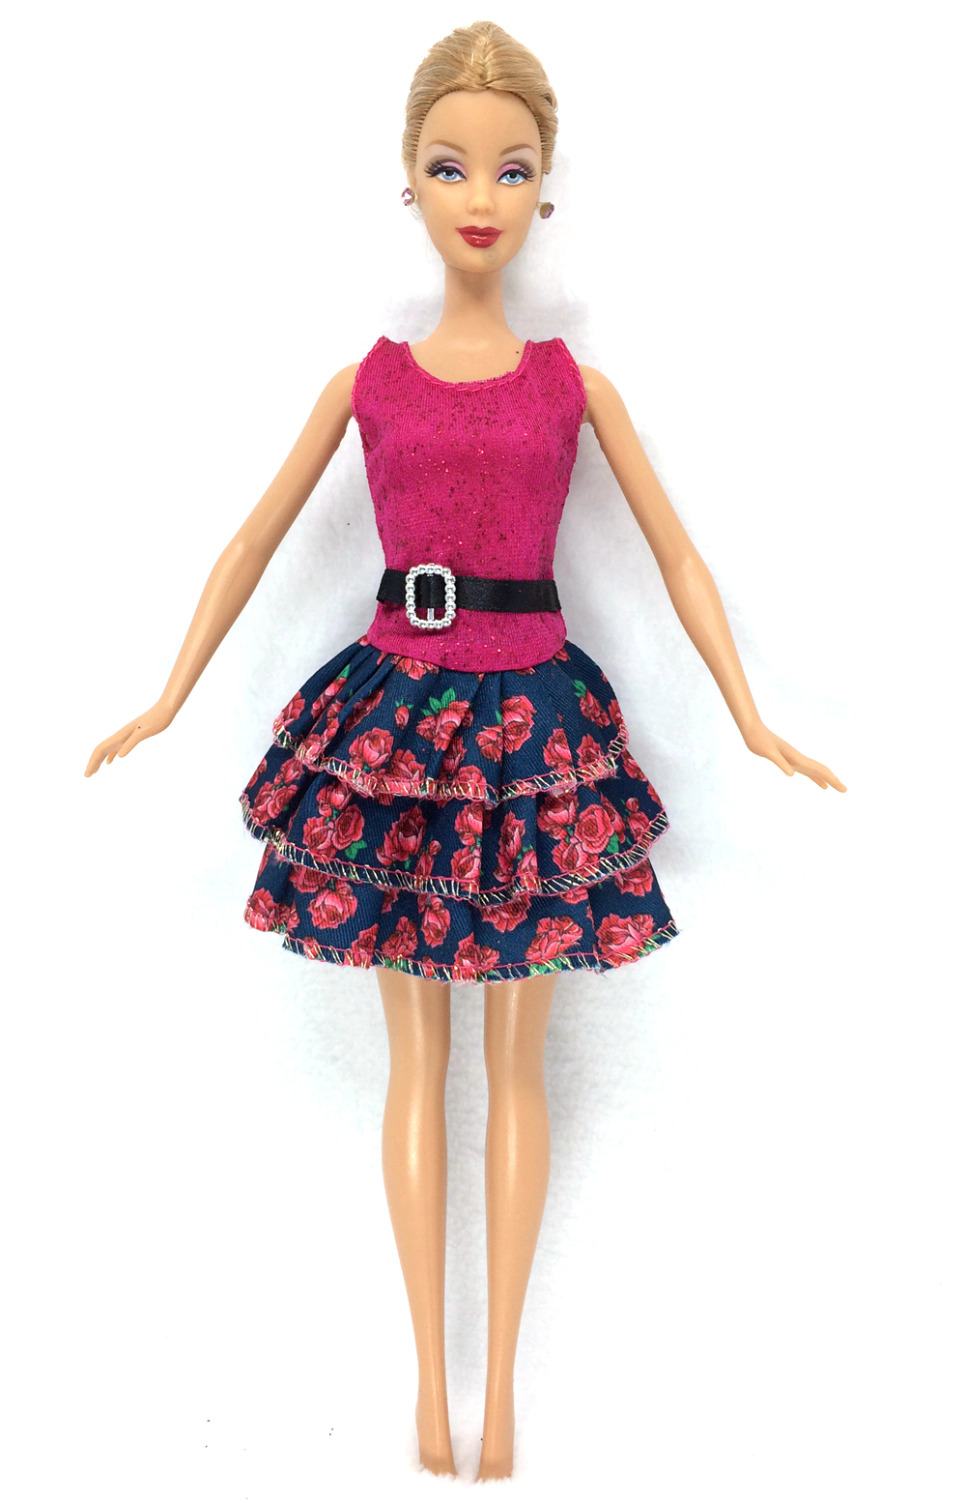 Best Barbie Dolls And Toys : Nk newest doll dress beautiful handmade party